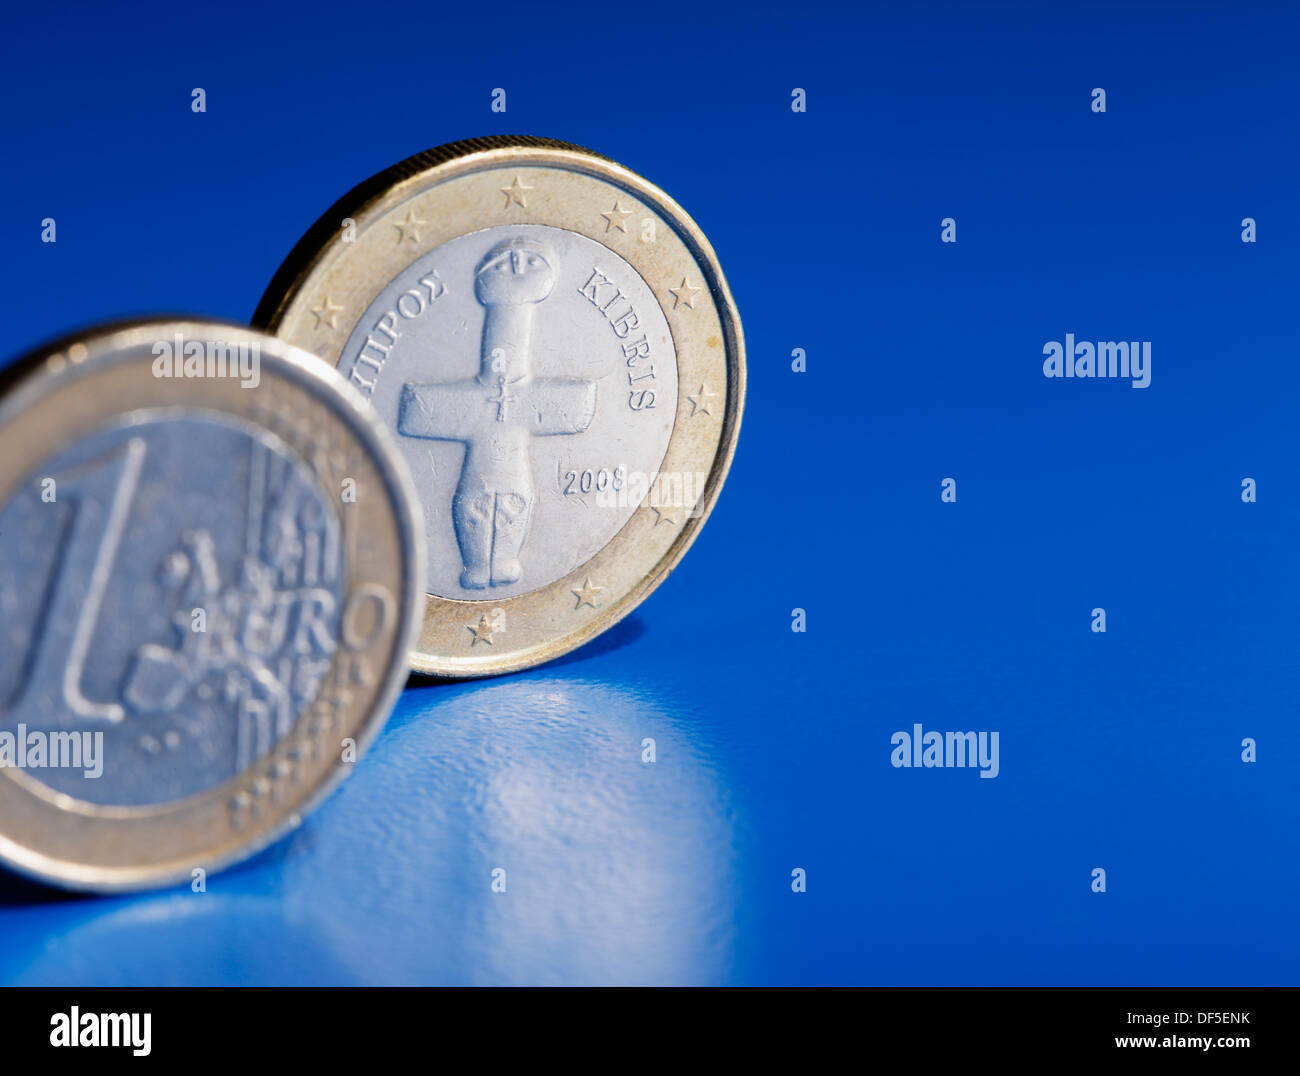 Euro coins from Cyprus on blue background. - Stock Image